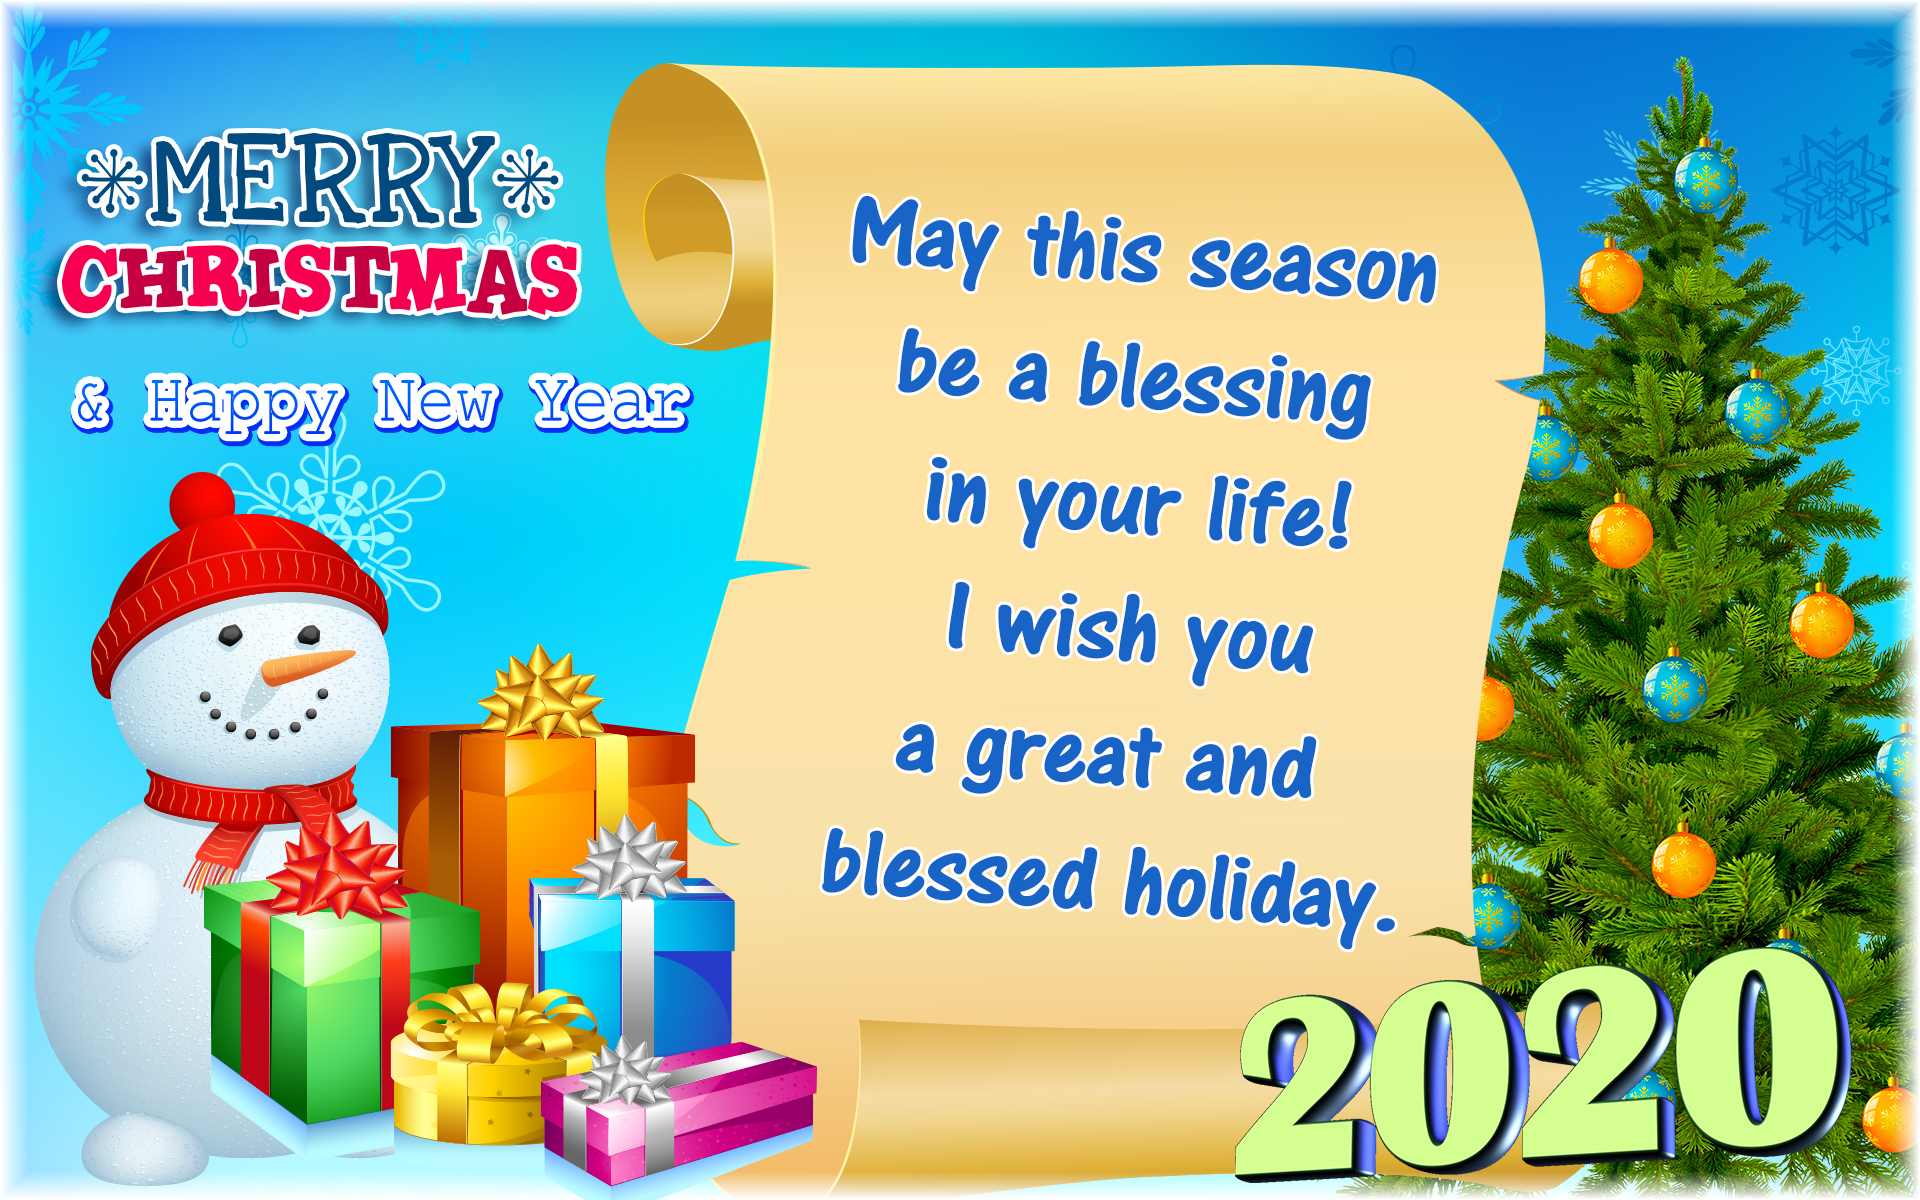 merry christmas happy new year 2020 cards pictures ᐉ holidays merry christmas happy new year 2020